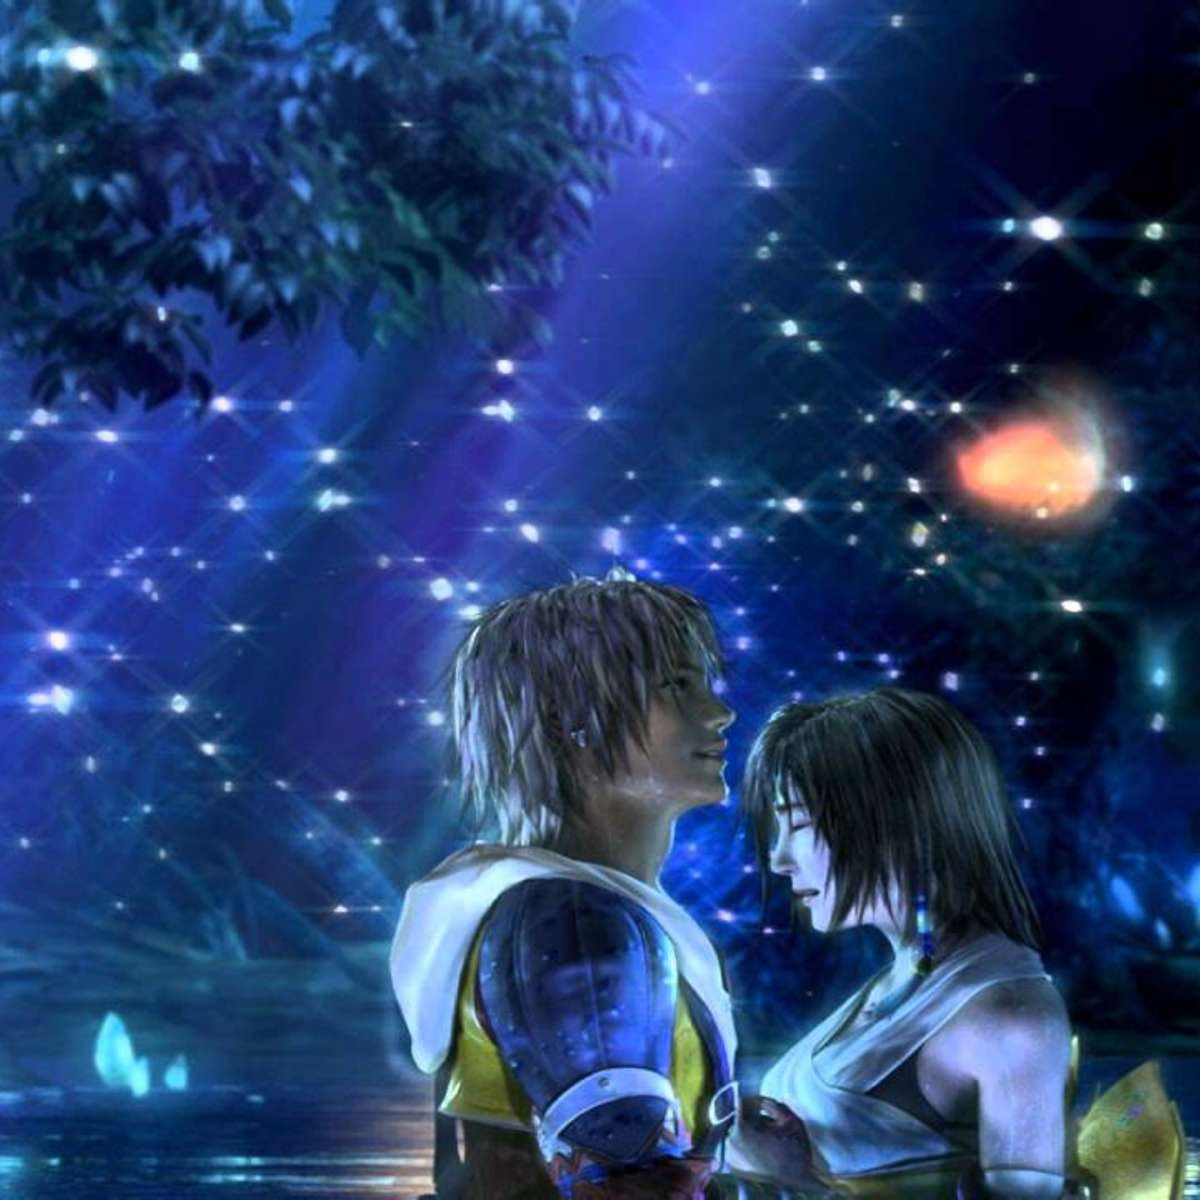 Final Fantasy X - Tidus and Yuna